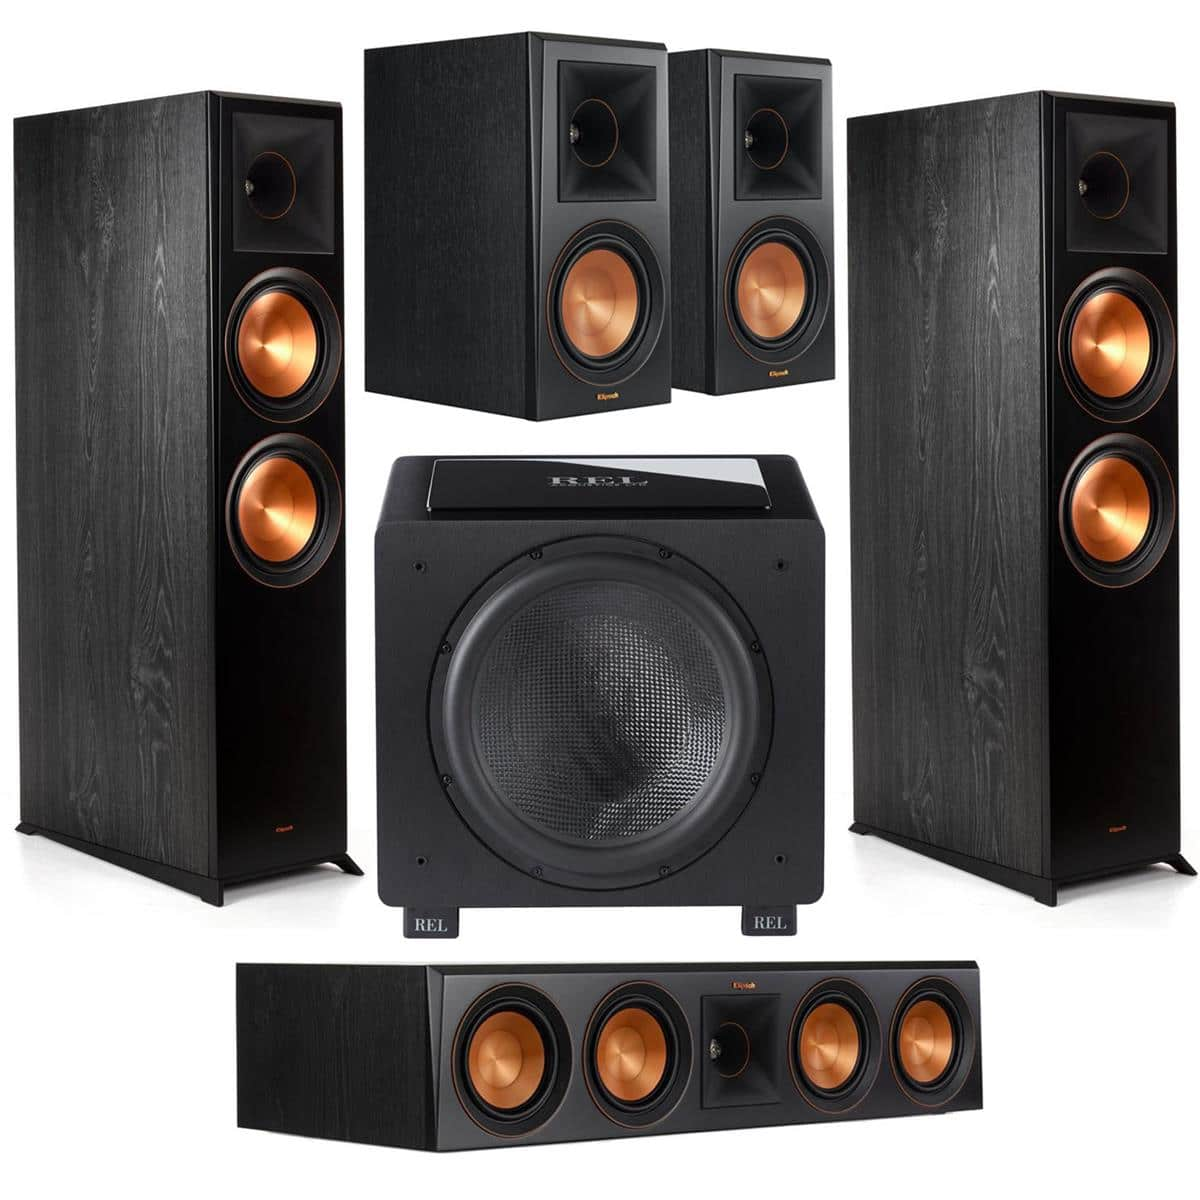 Klipsch Reference Premiere Speakers:2x RP-8060FA + 2x RP-600M + RP-504C + Rel HT/1508 Subwoofer $2899 + free s/h at Adorama